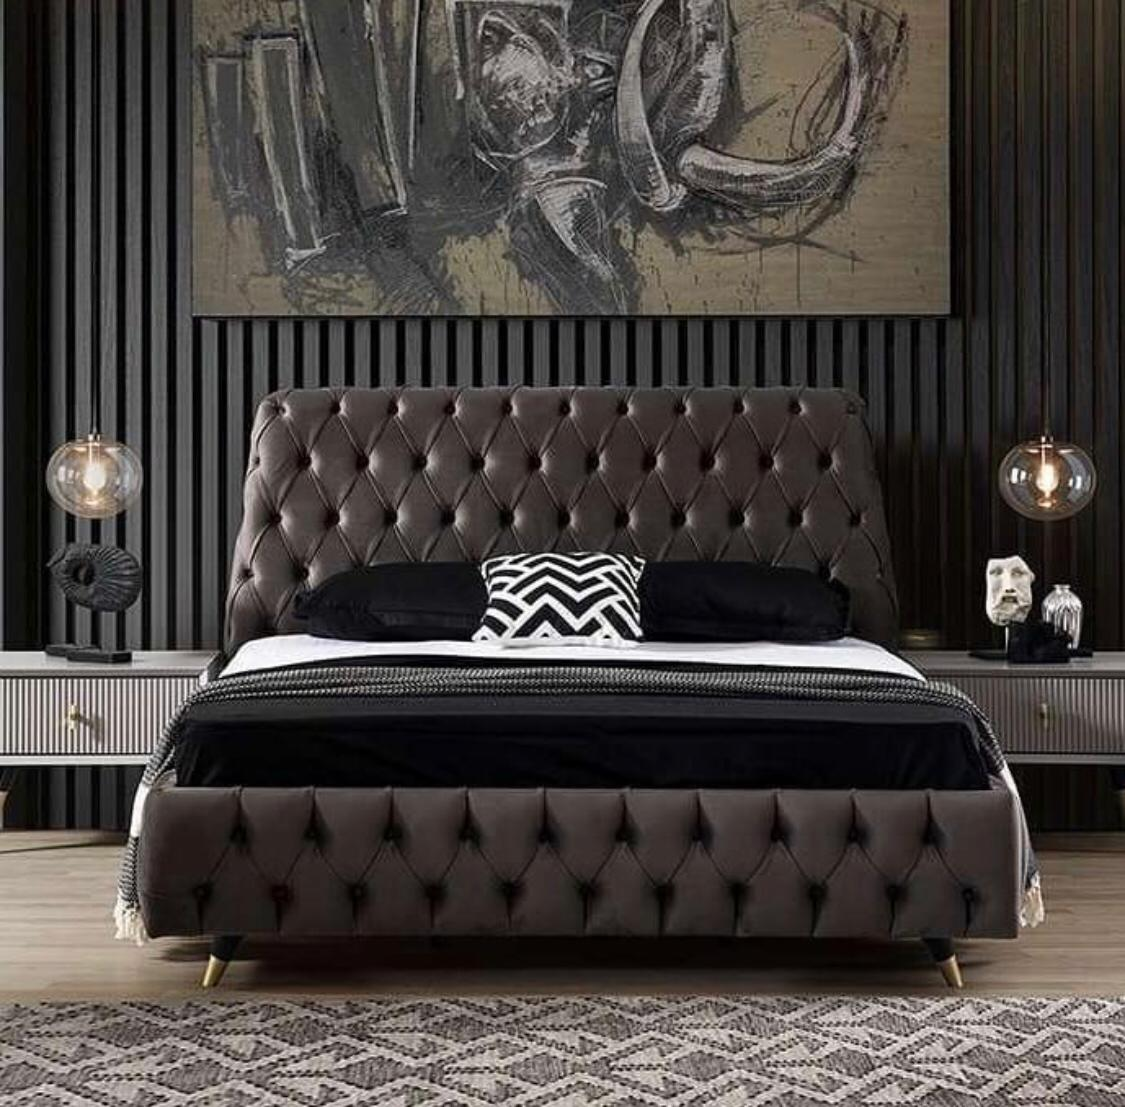 """BED BASE HEADBOARD AND BED <span style=""""color: var(--primary-hover);"""">MODELS  </span>"""